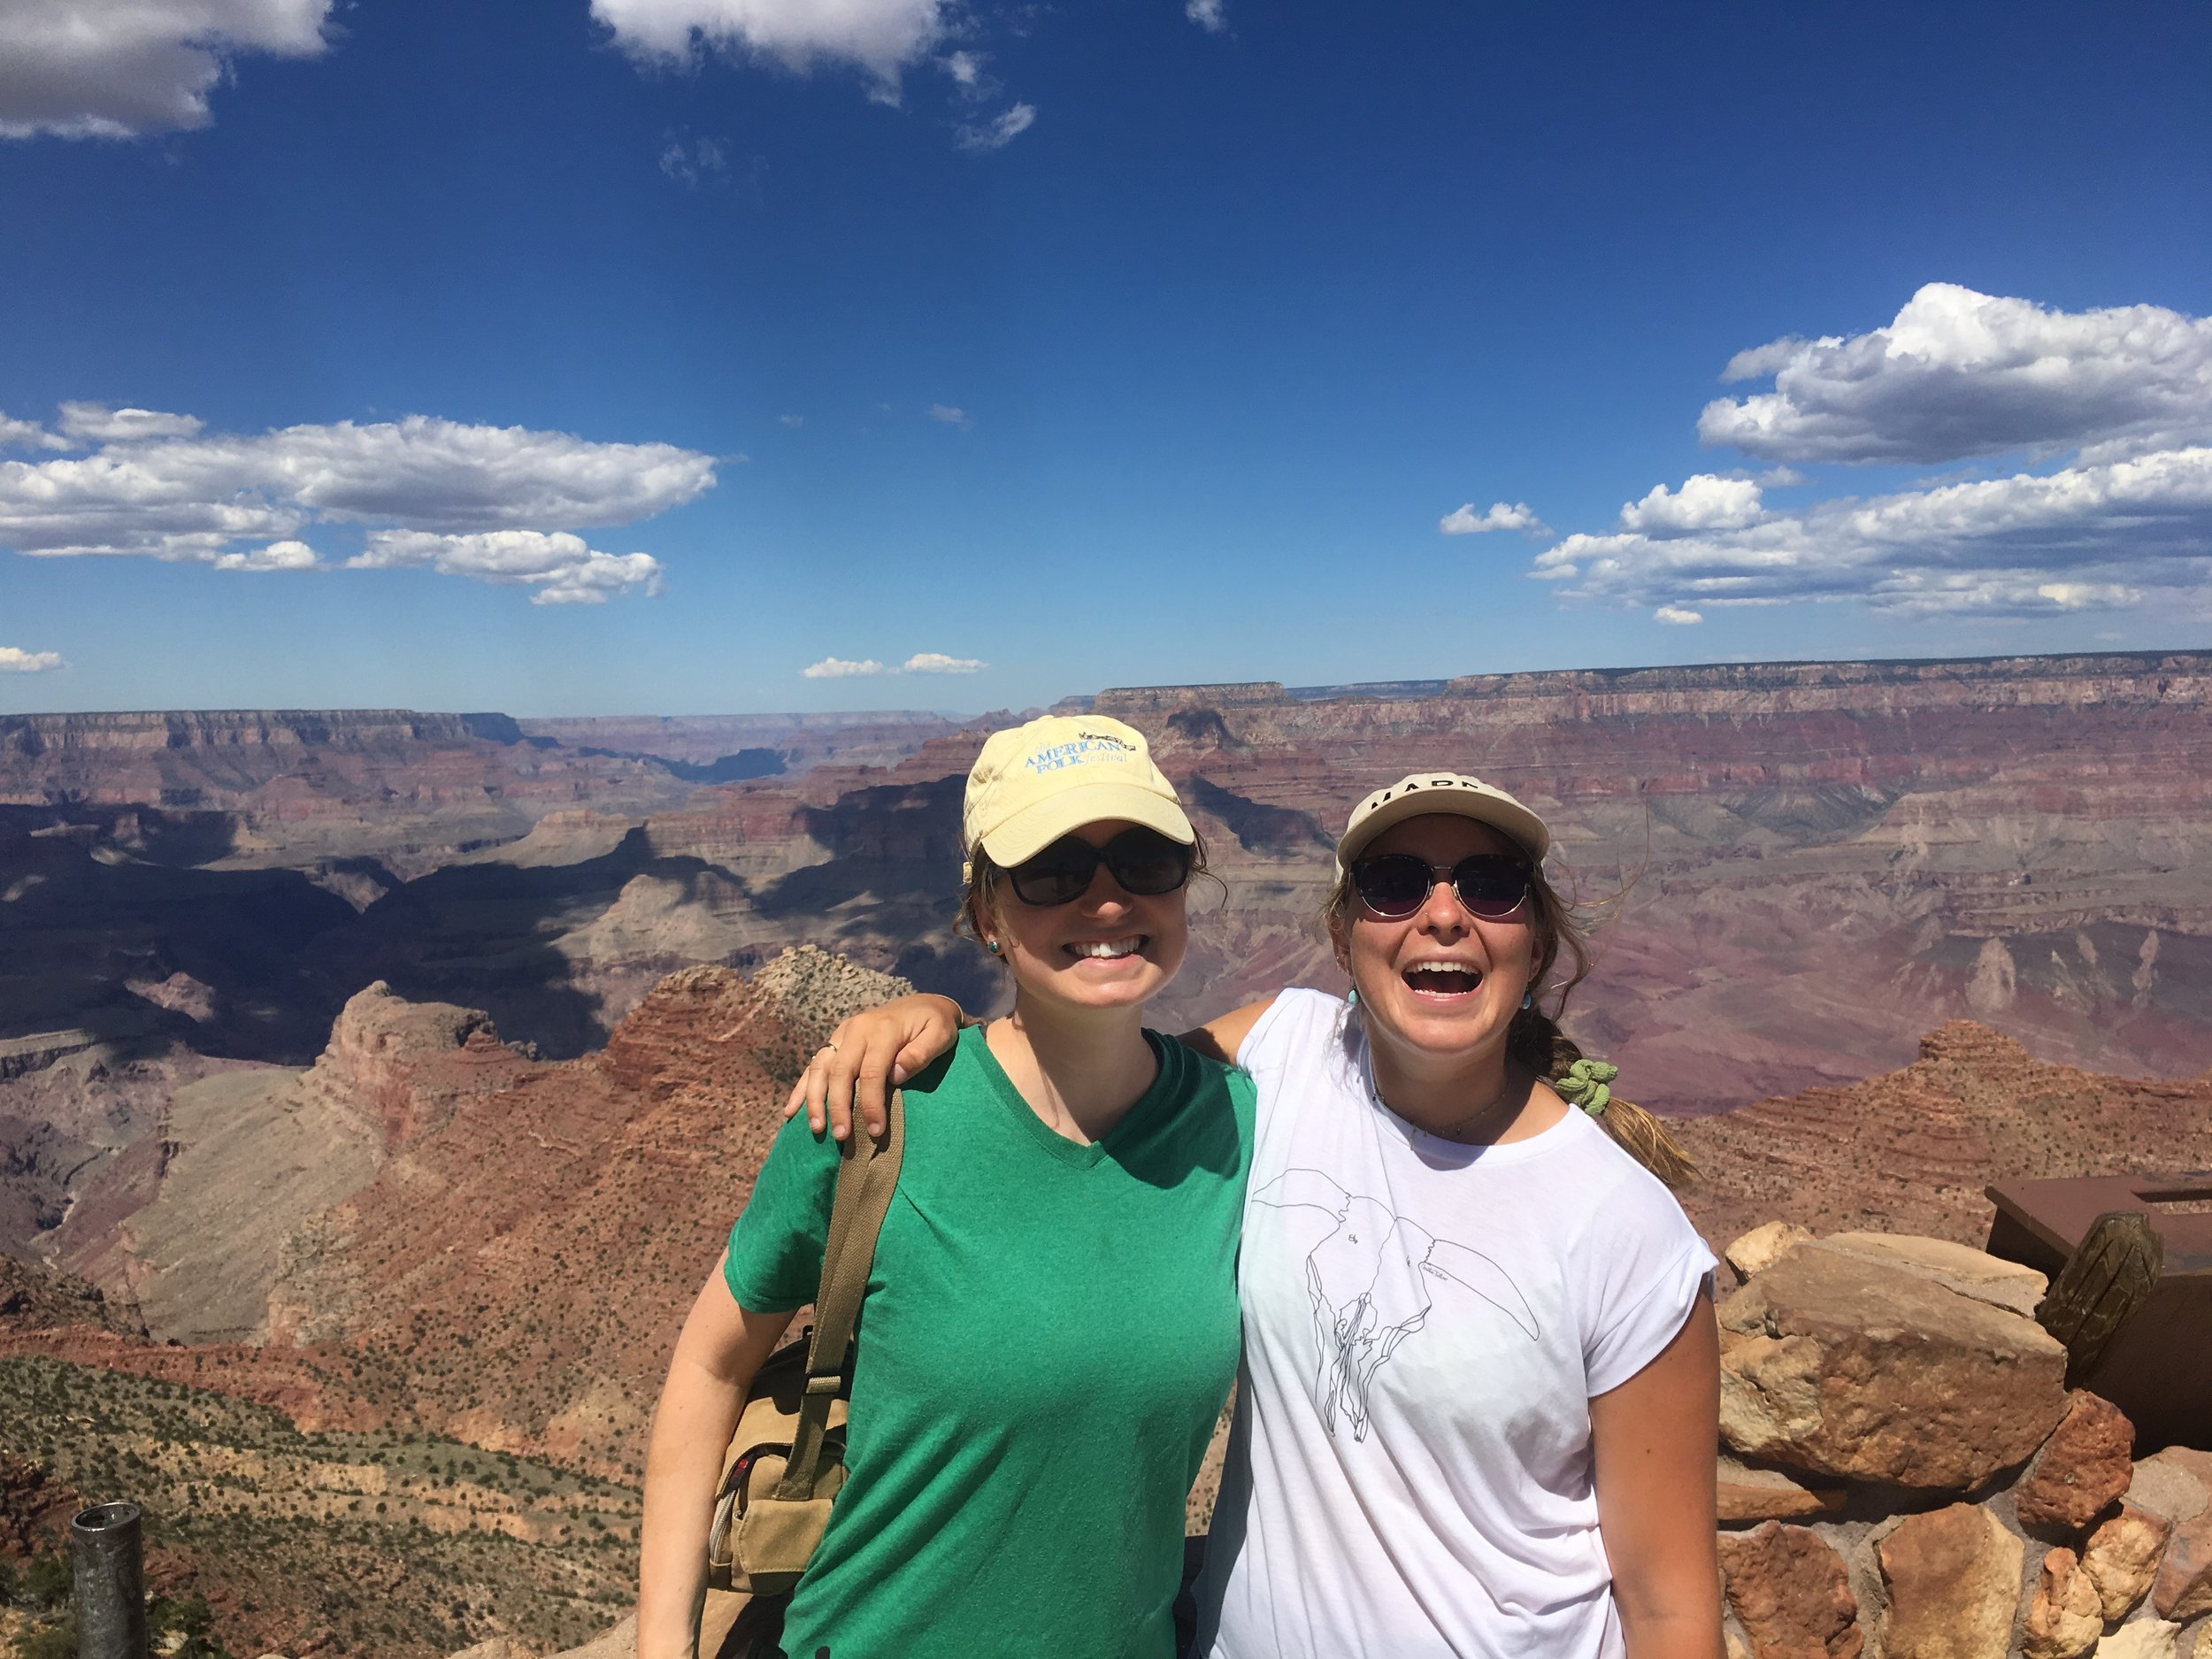 The grandest of canyons with the greatest friend!